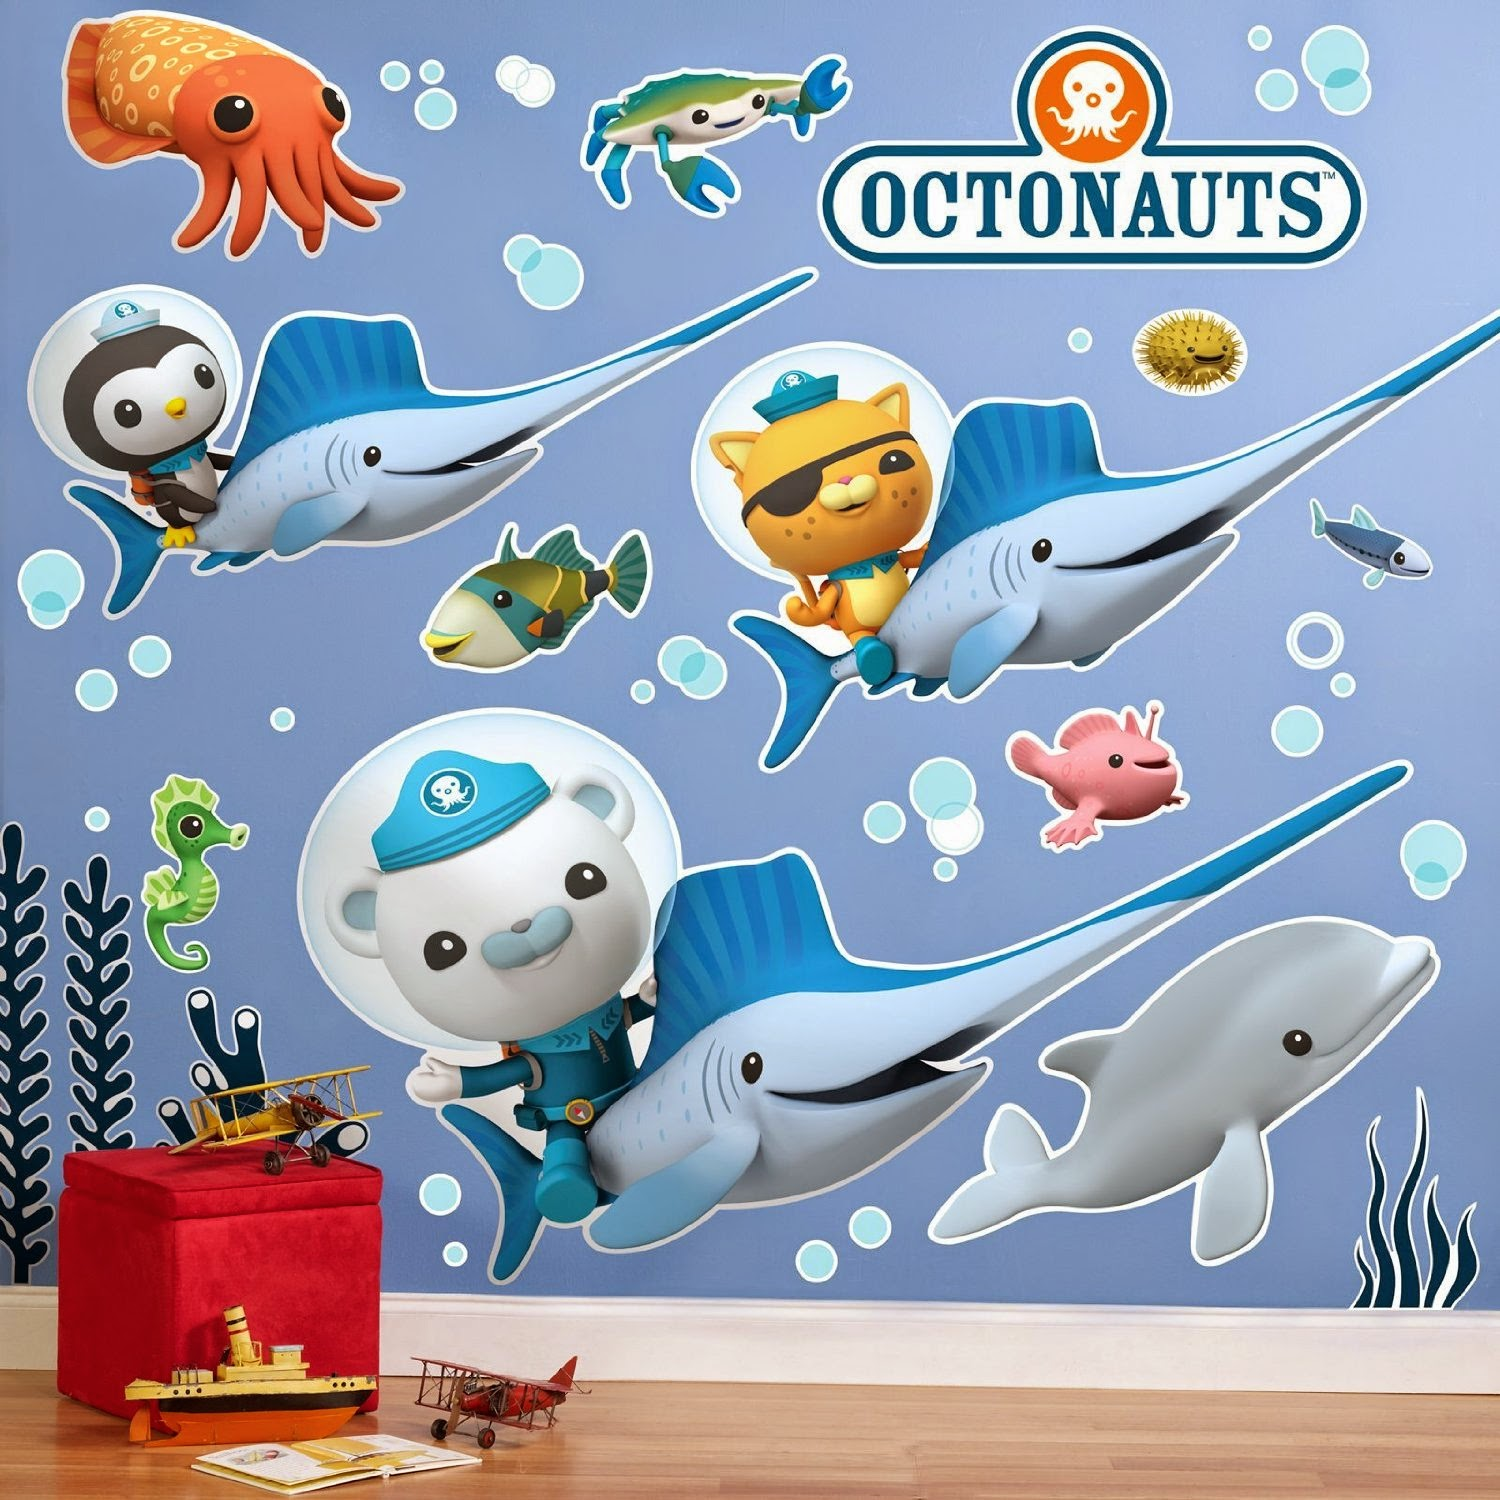 Octonauts Wall Decal